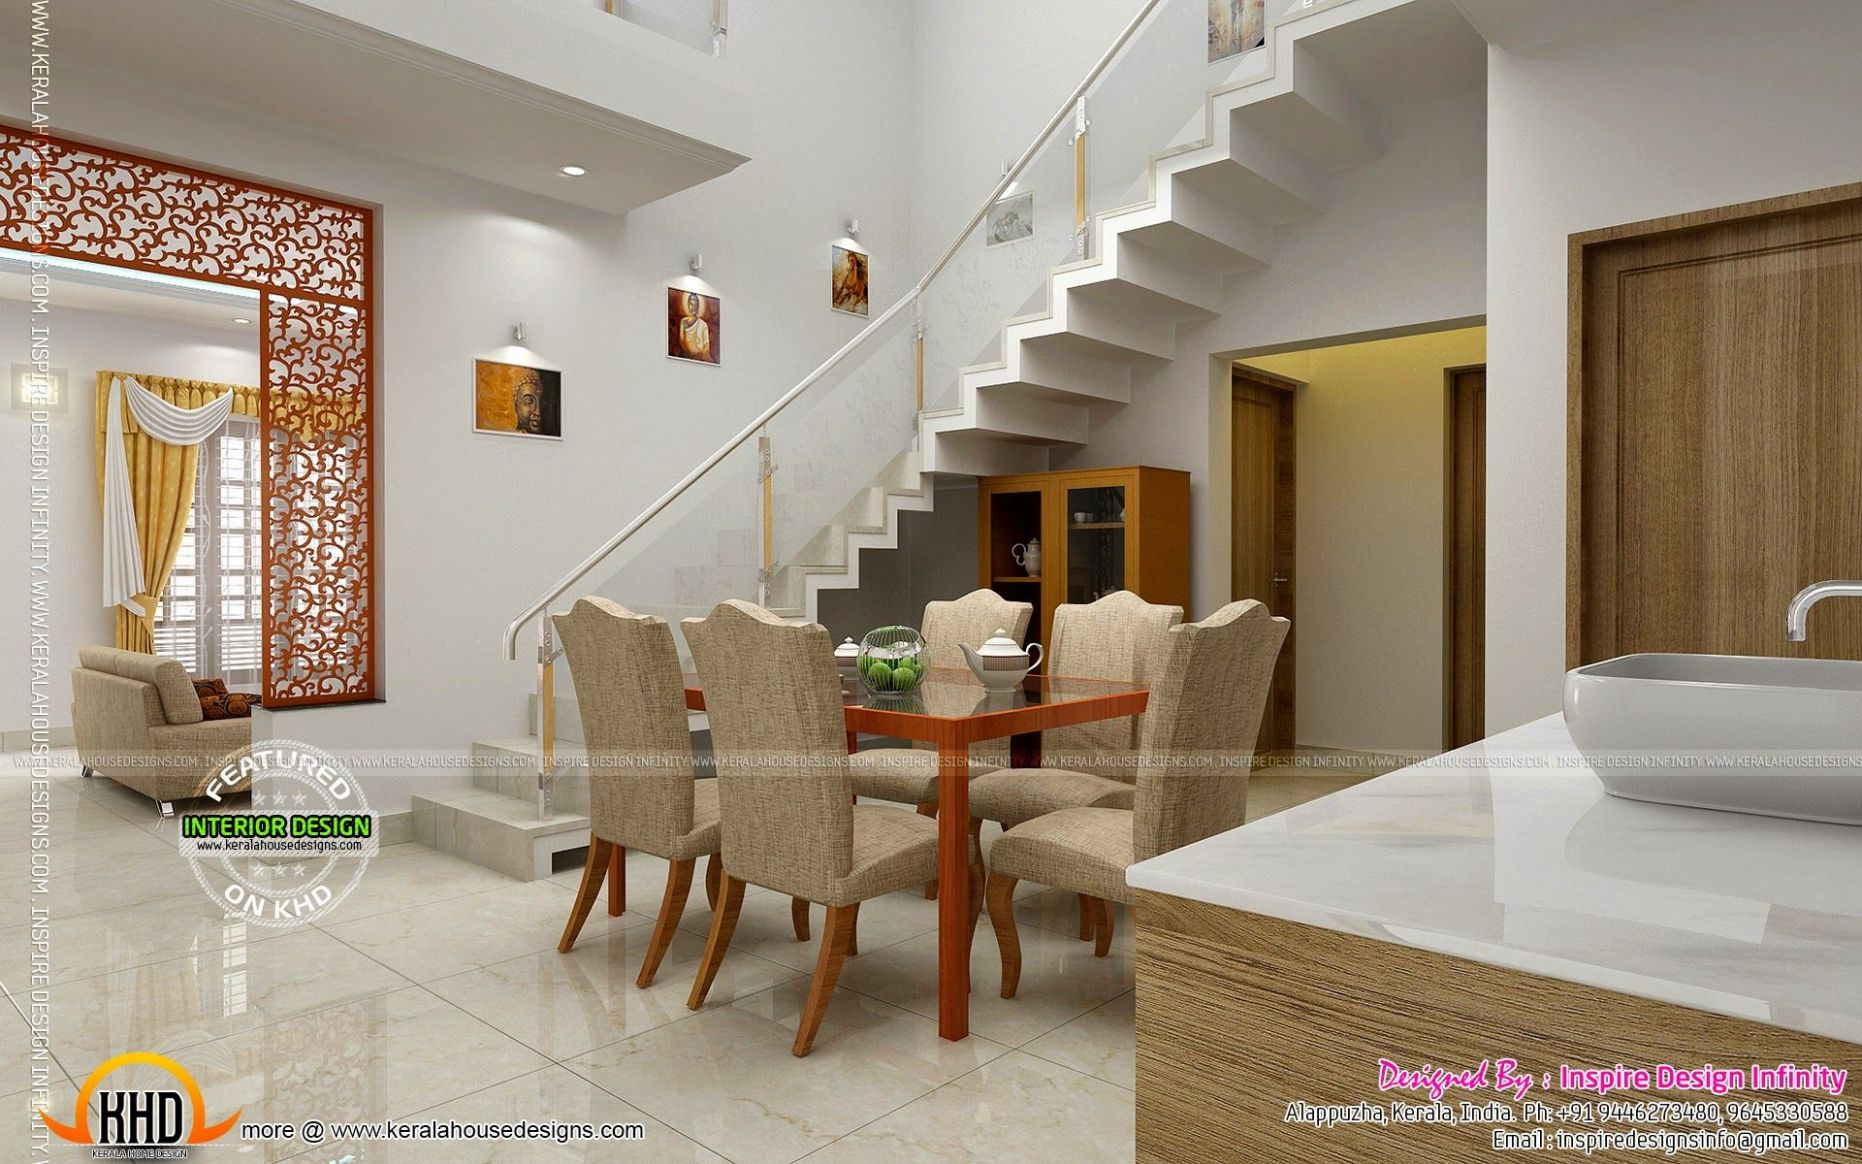 Dining room designs - Kerala home design and floor plans ..